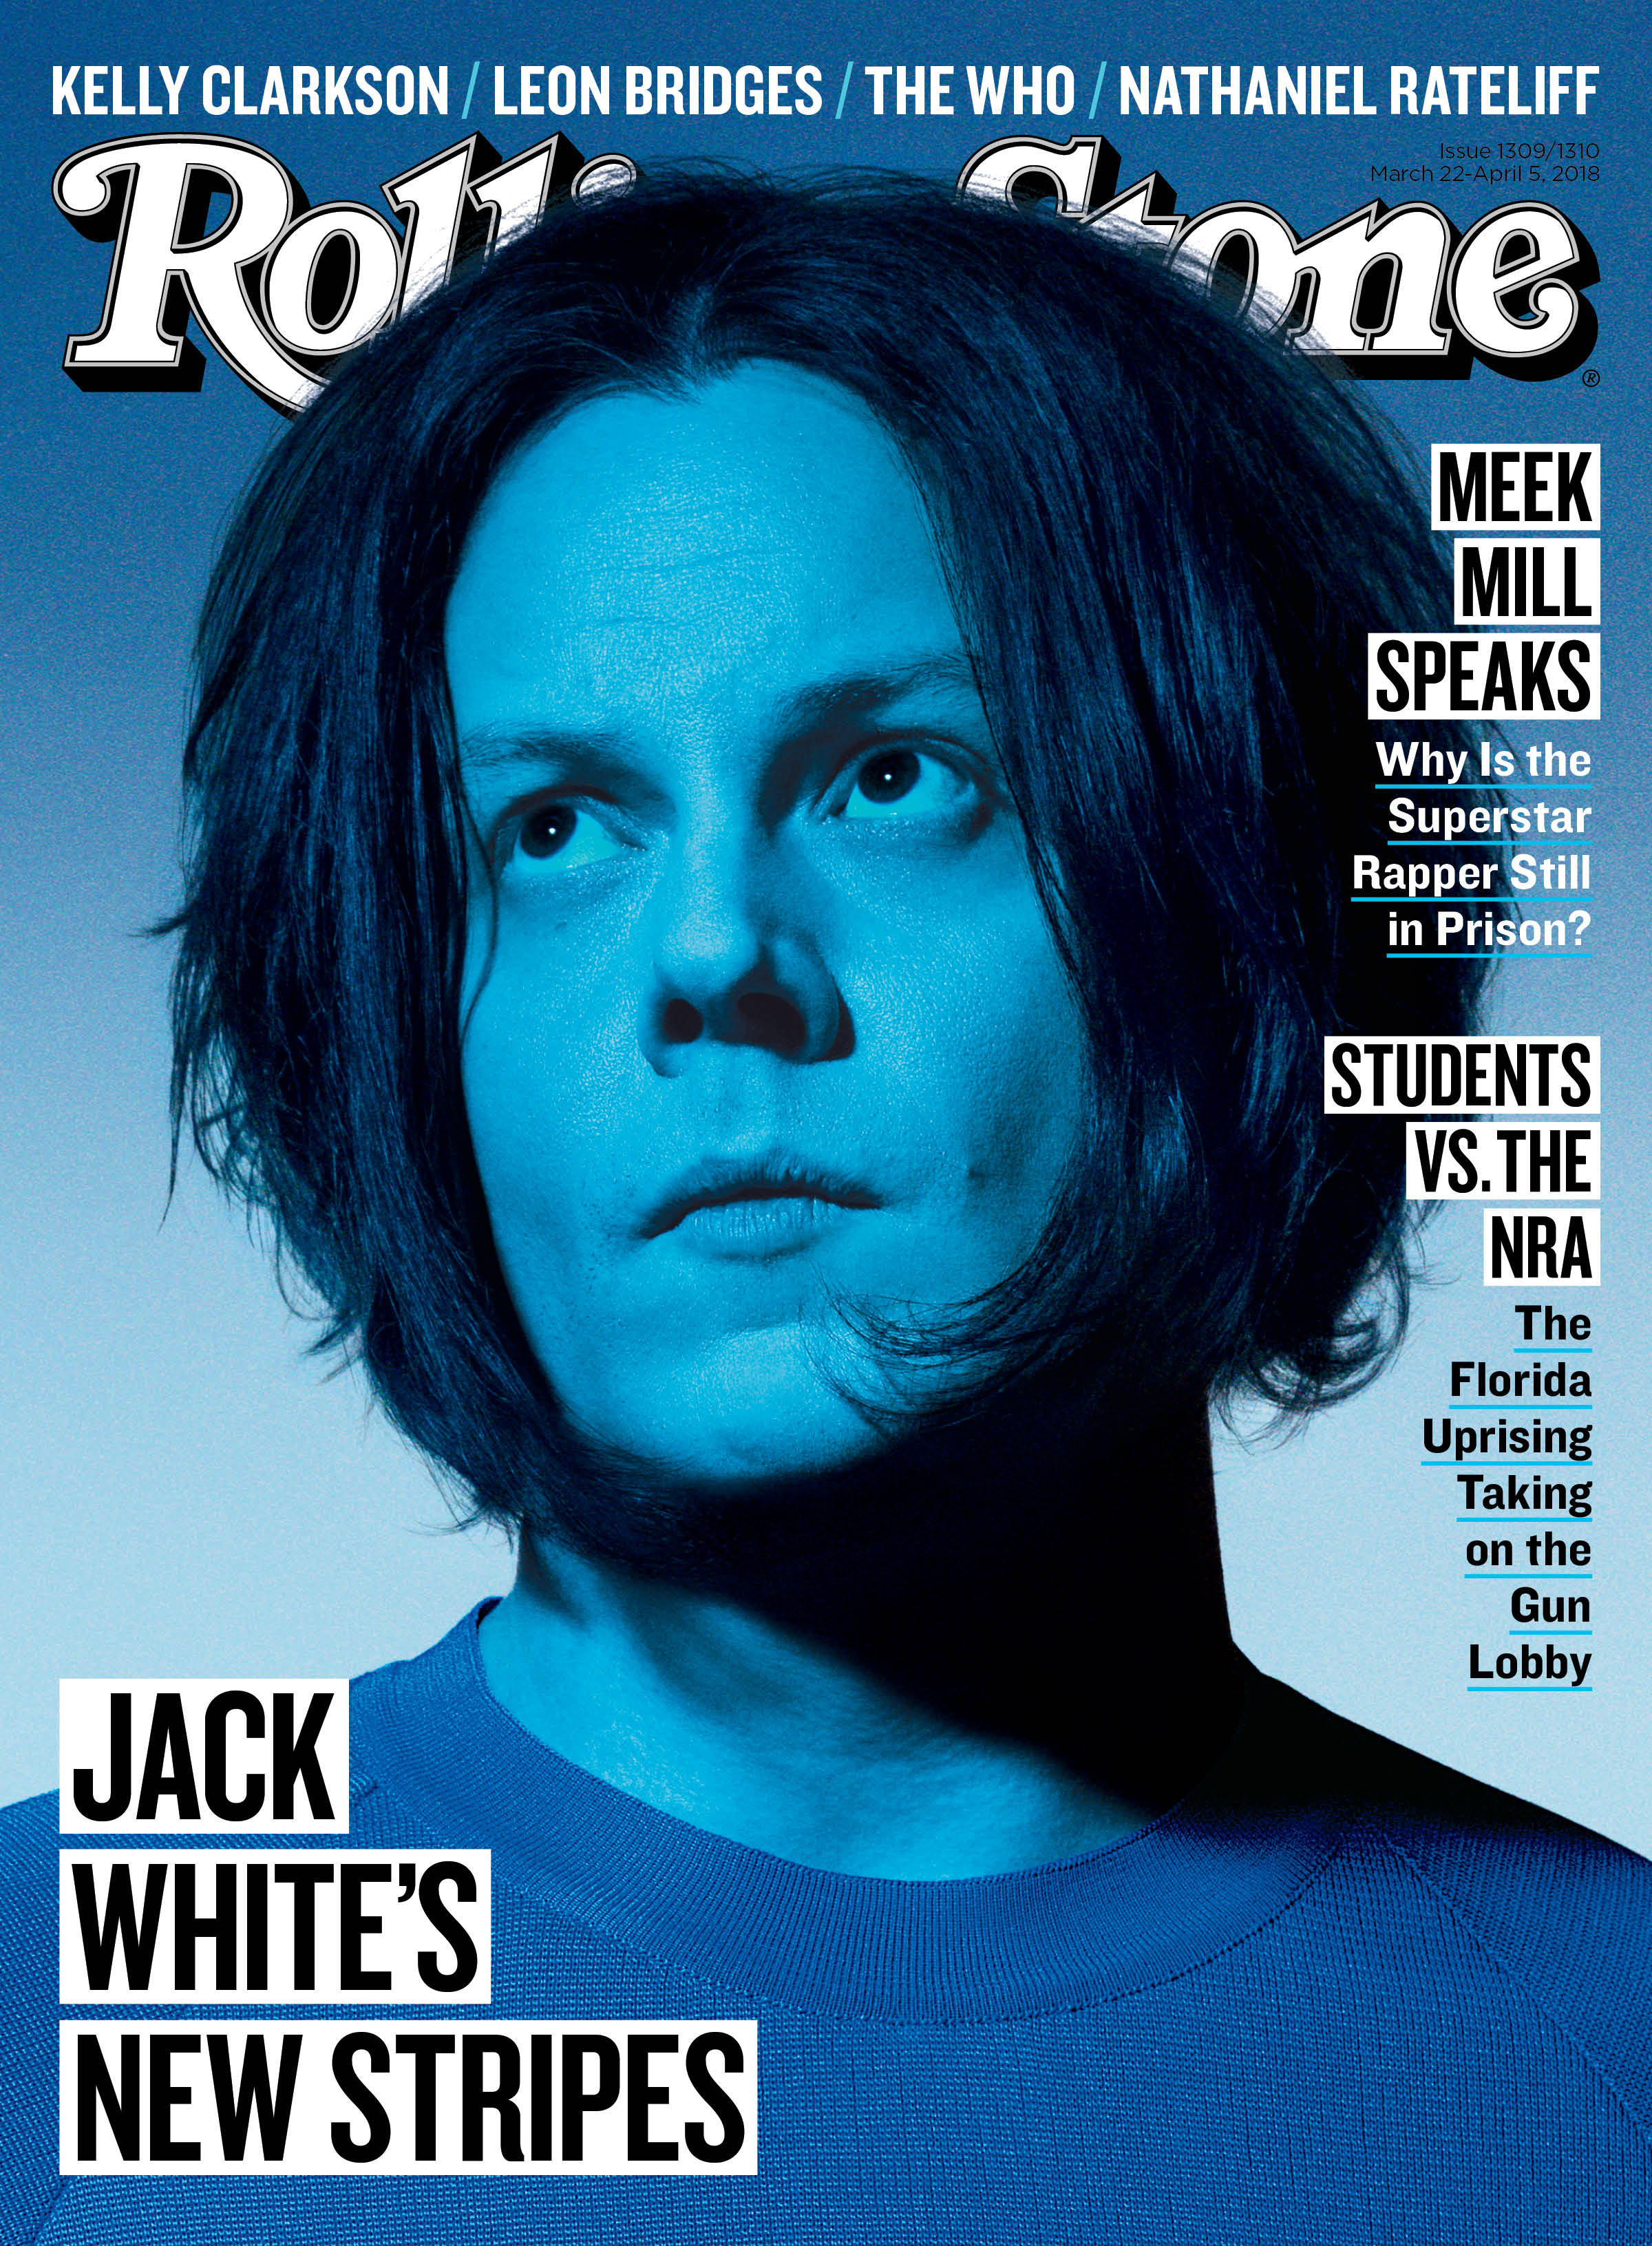 Jack White Cover Story: New Solo Album, Why White Stripes Won't